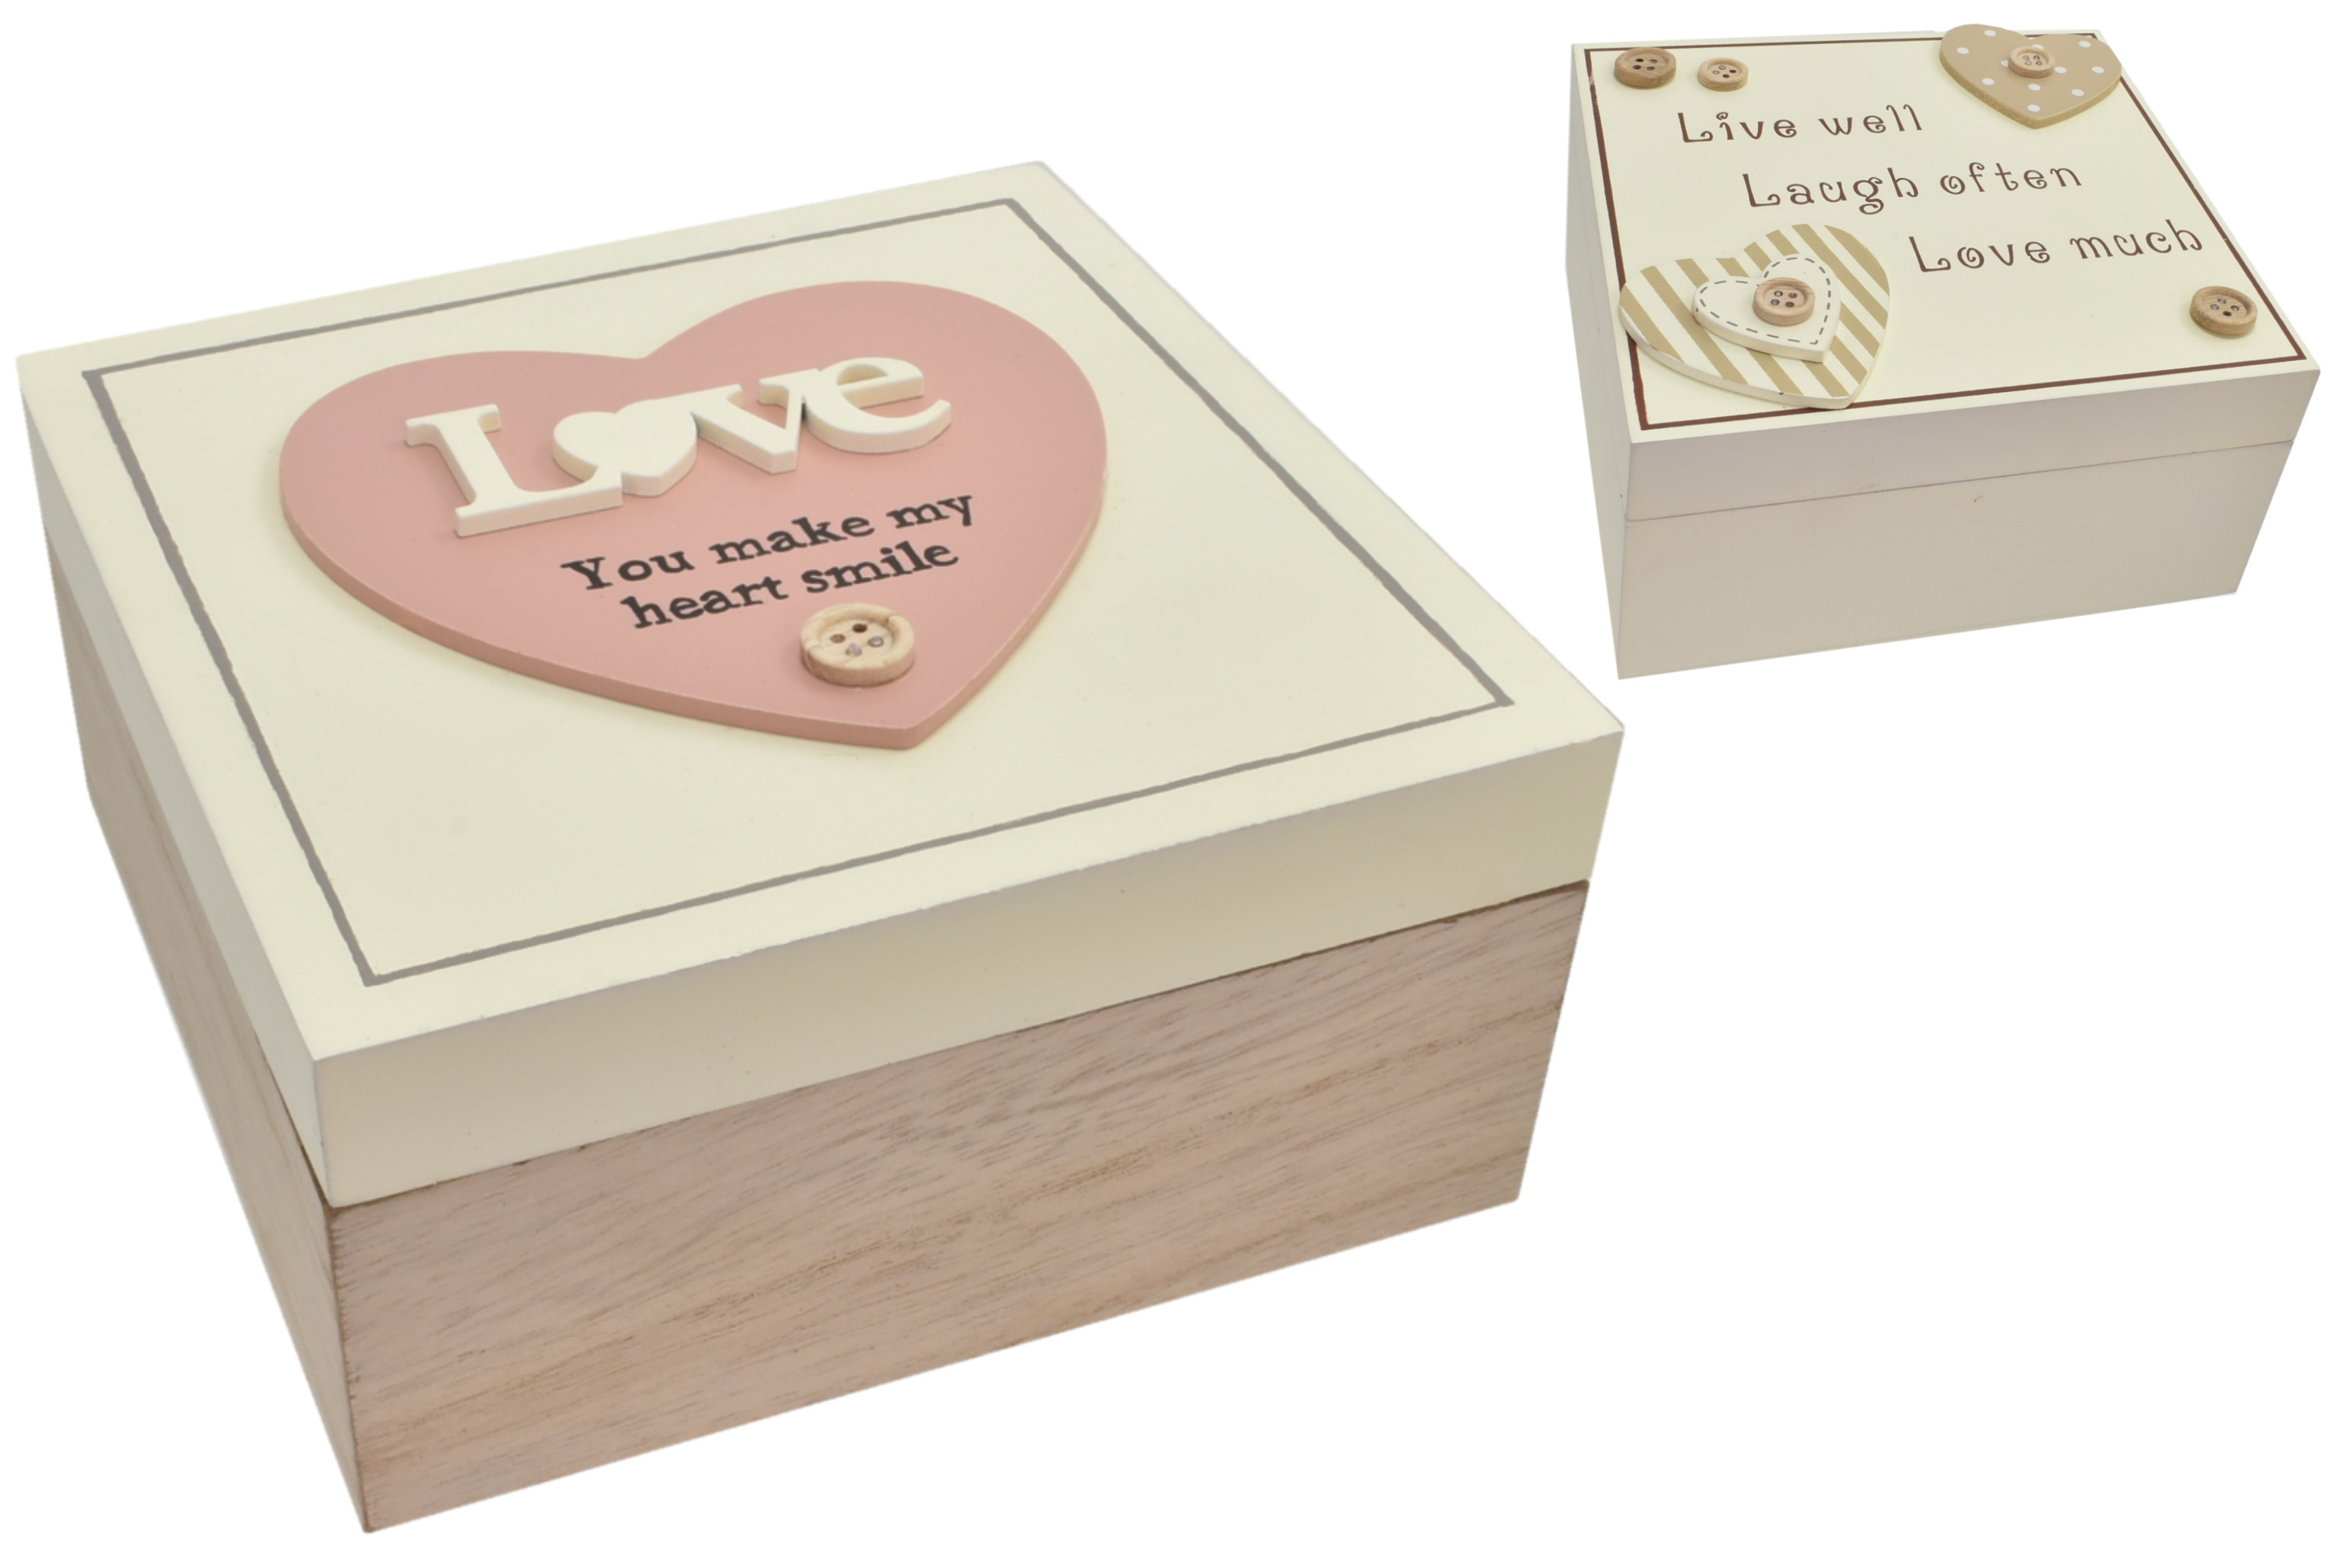 15x15x7.5cm Wooden Storage Box With Hearts 2 Asst